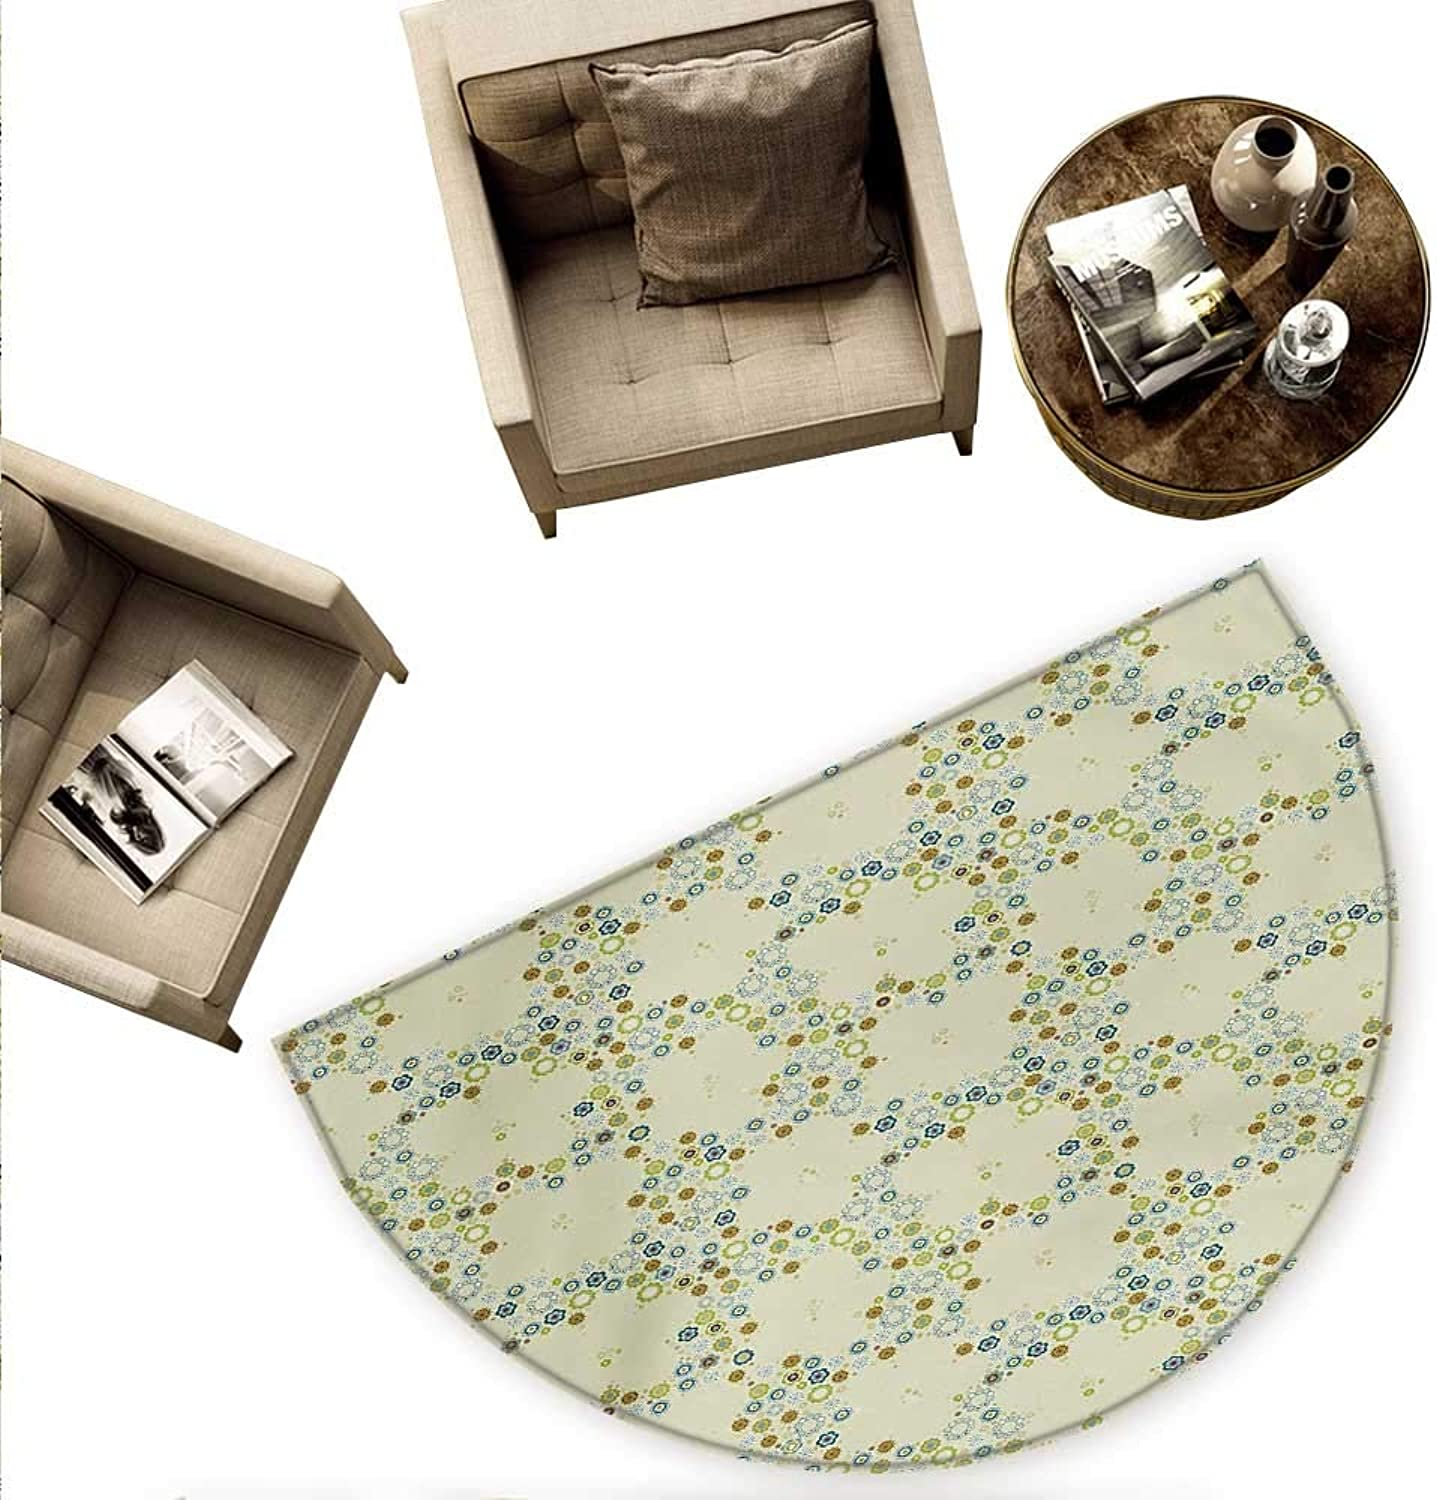 Flower Half Round Door mats Ornament of Medallion Shapes Bordered with Small Wildflowers Pattern Print Bathroom Mat H 78.7  xD 118.1  Khaki bluee Green